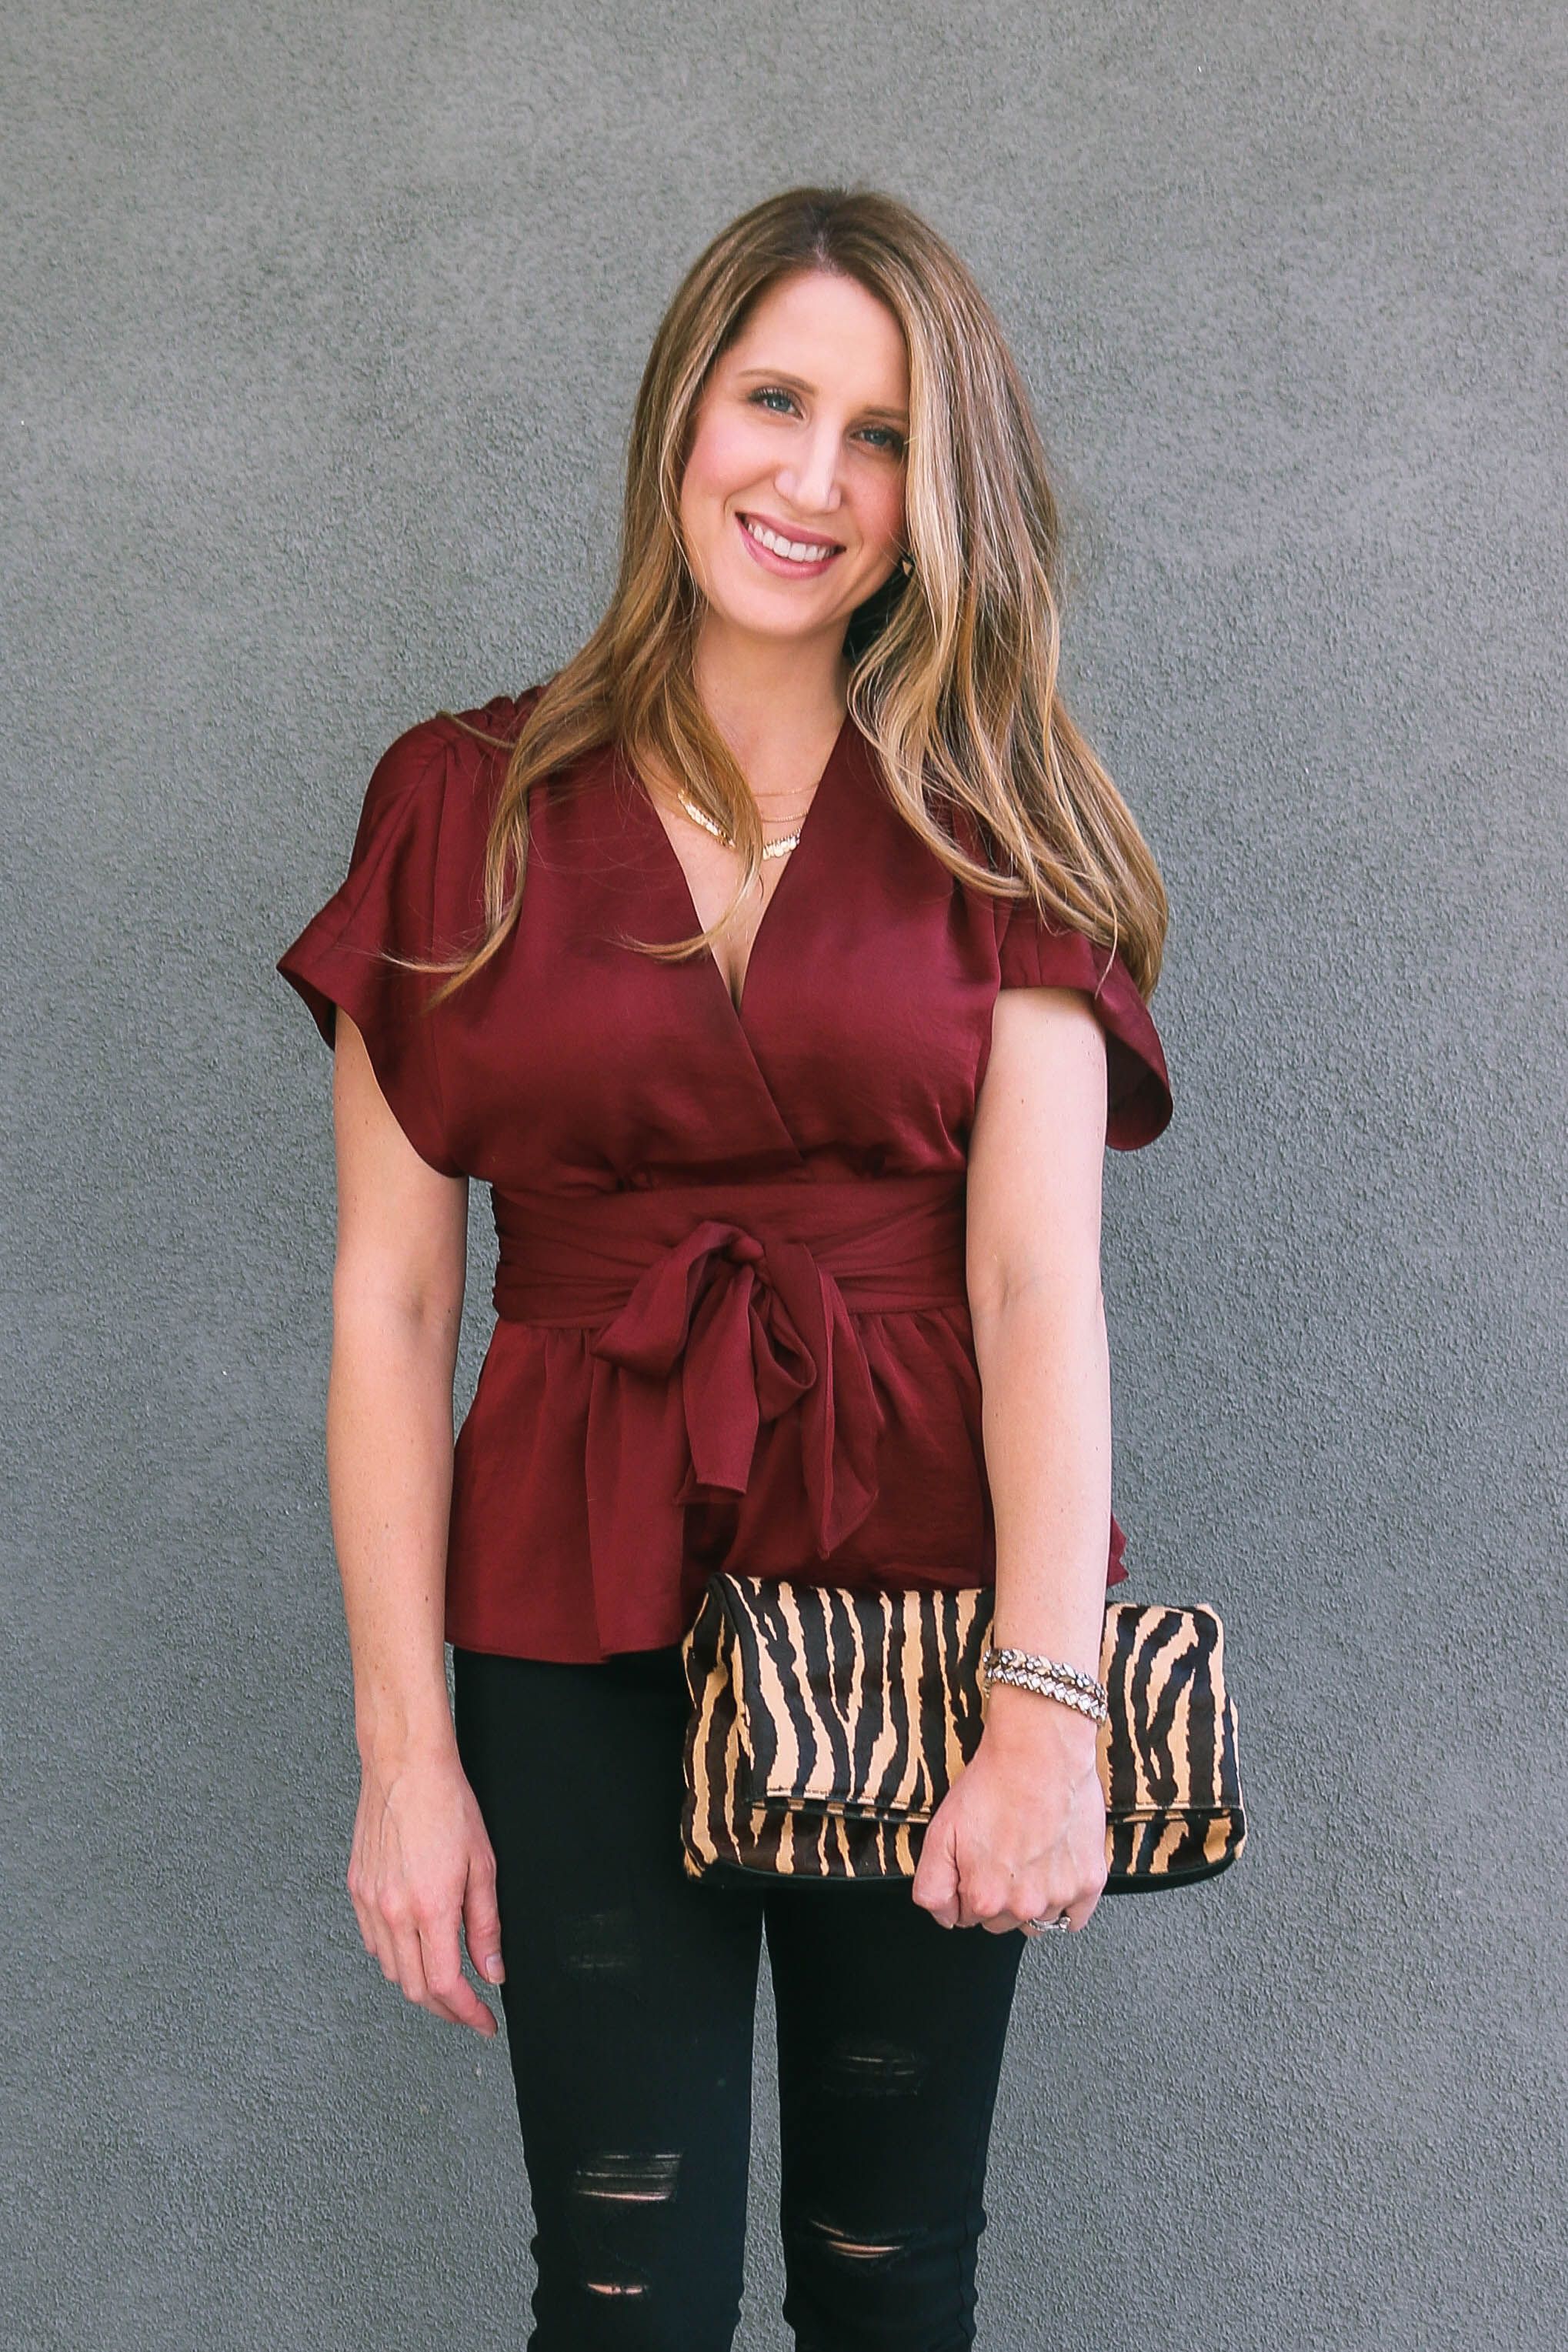 The Perfect Top for Date Night